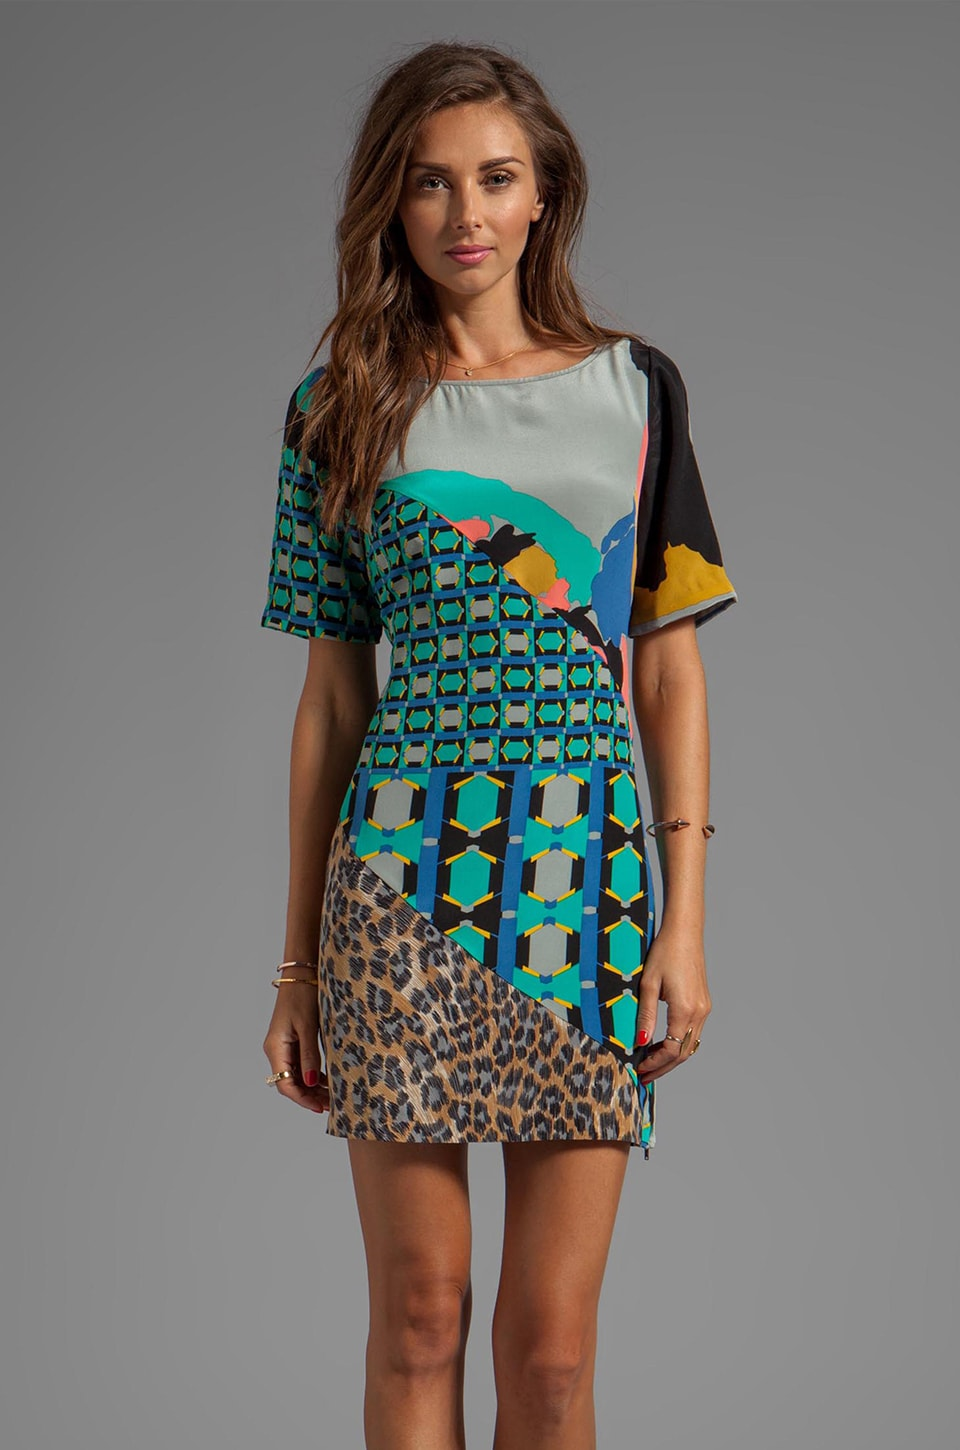 Tracy Reese Silk Prints Spliced Shift Dress in Multi